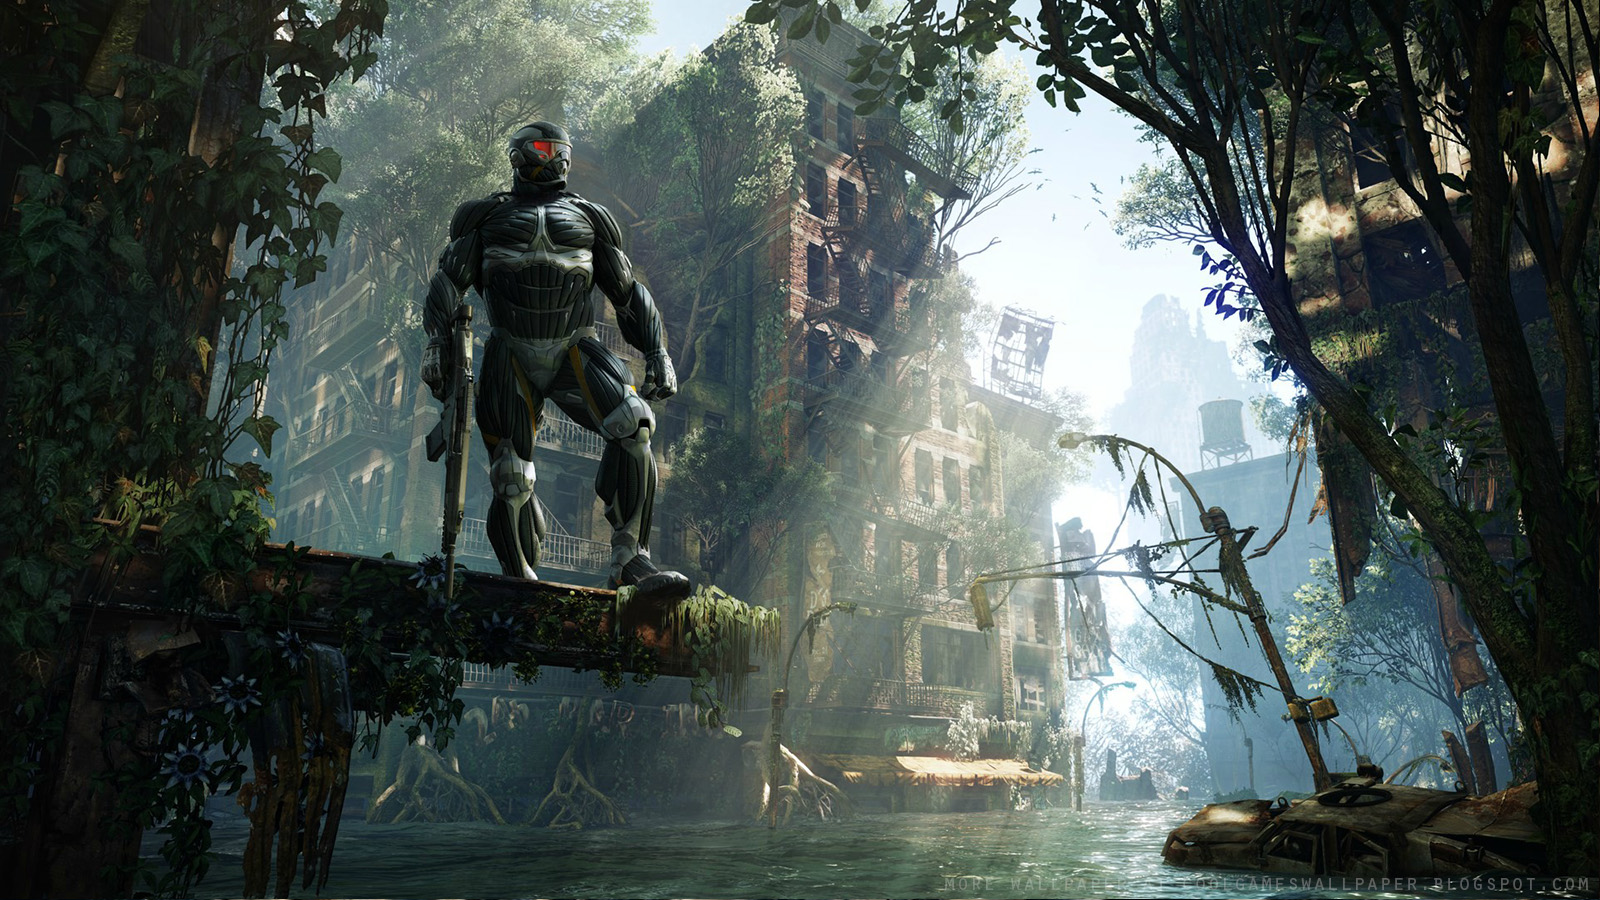 Crysis 3 2013 Video Game 4k Hd Desktop Wallpaper For 4k: Crysis 3 HD Desktop Wallpaper 3